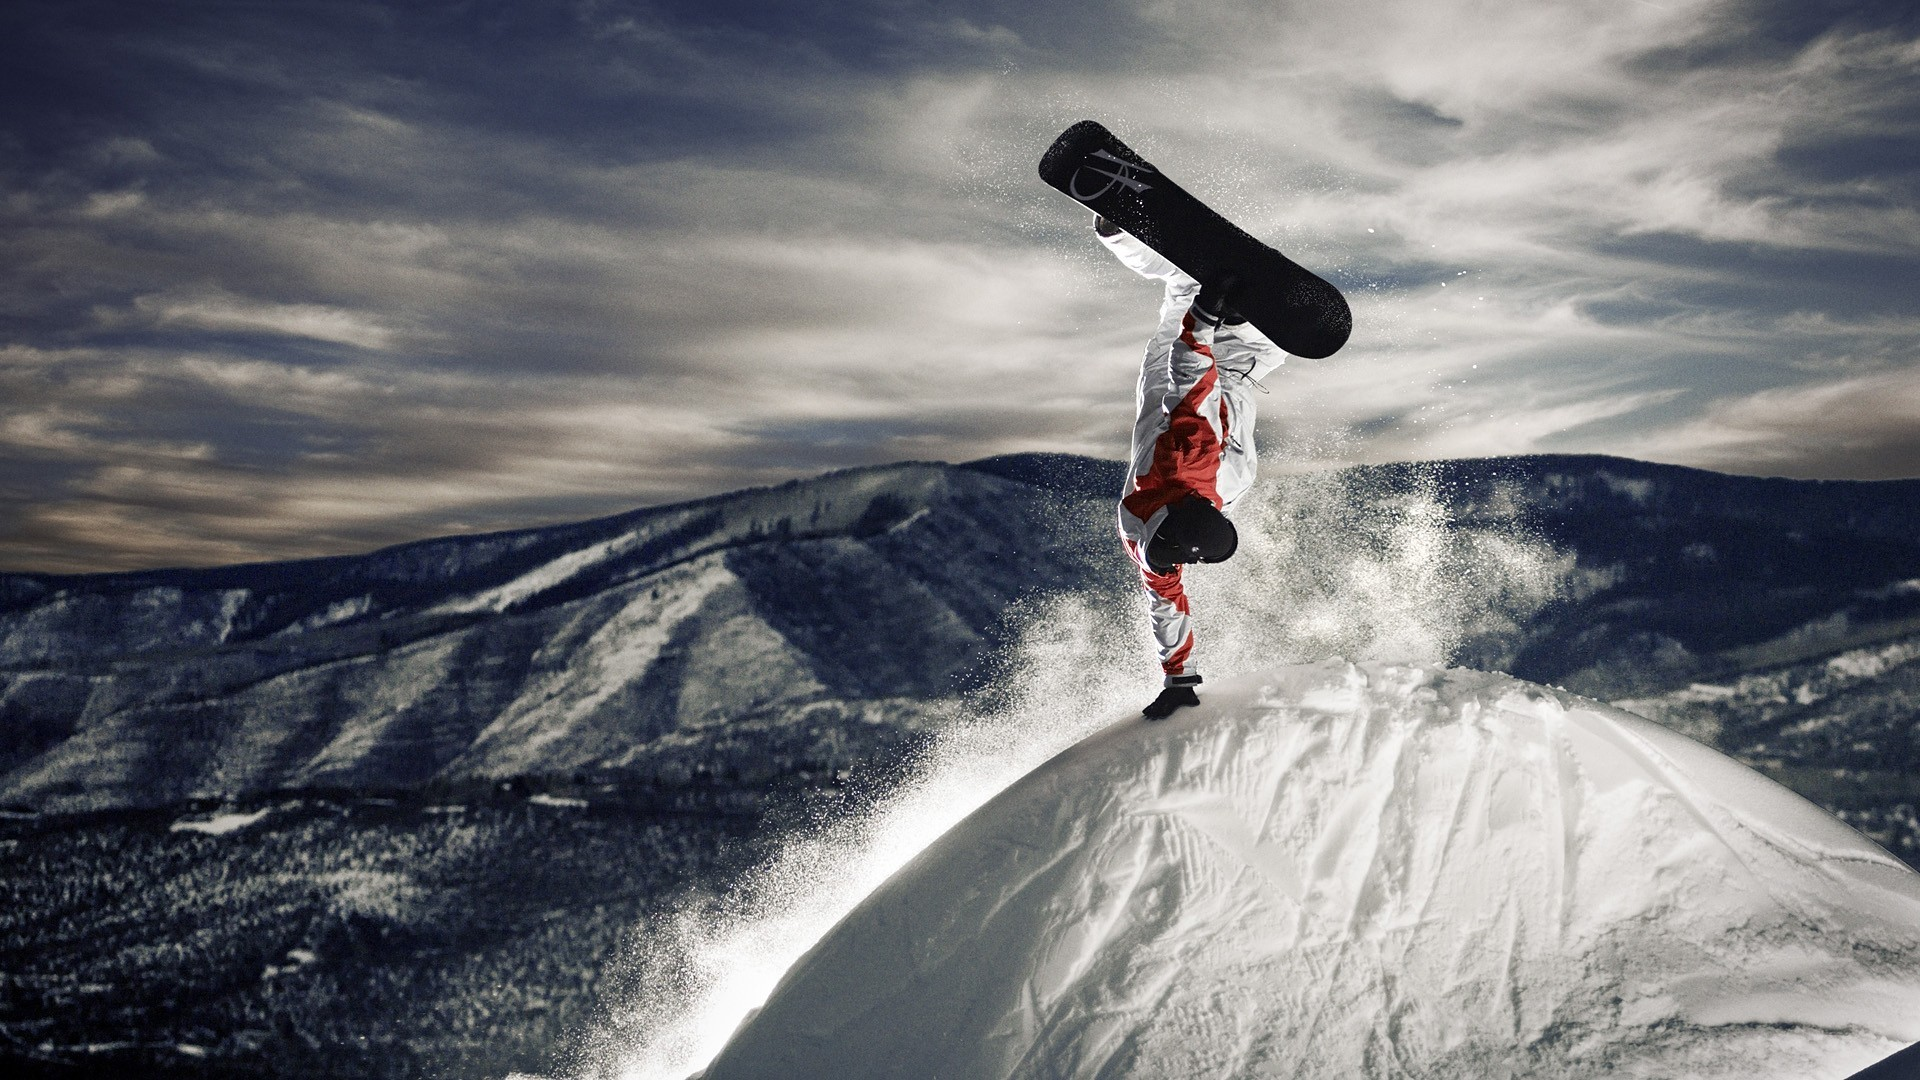 snowboarding wallpaper, wallpapers hd desktop wallpapers